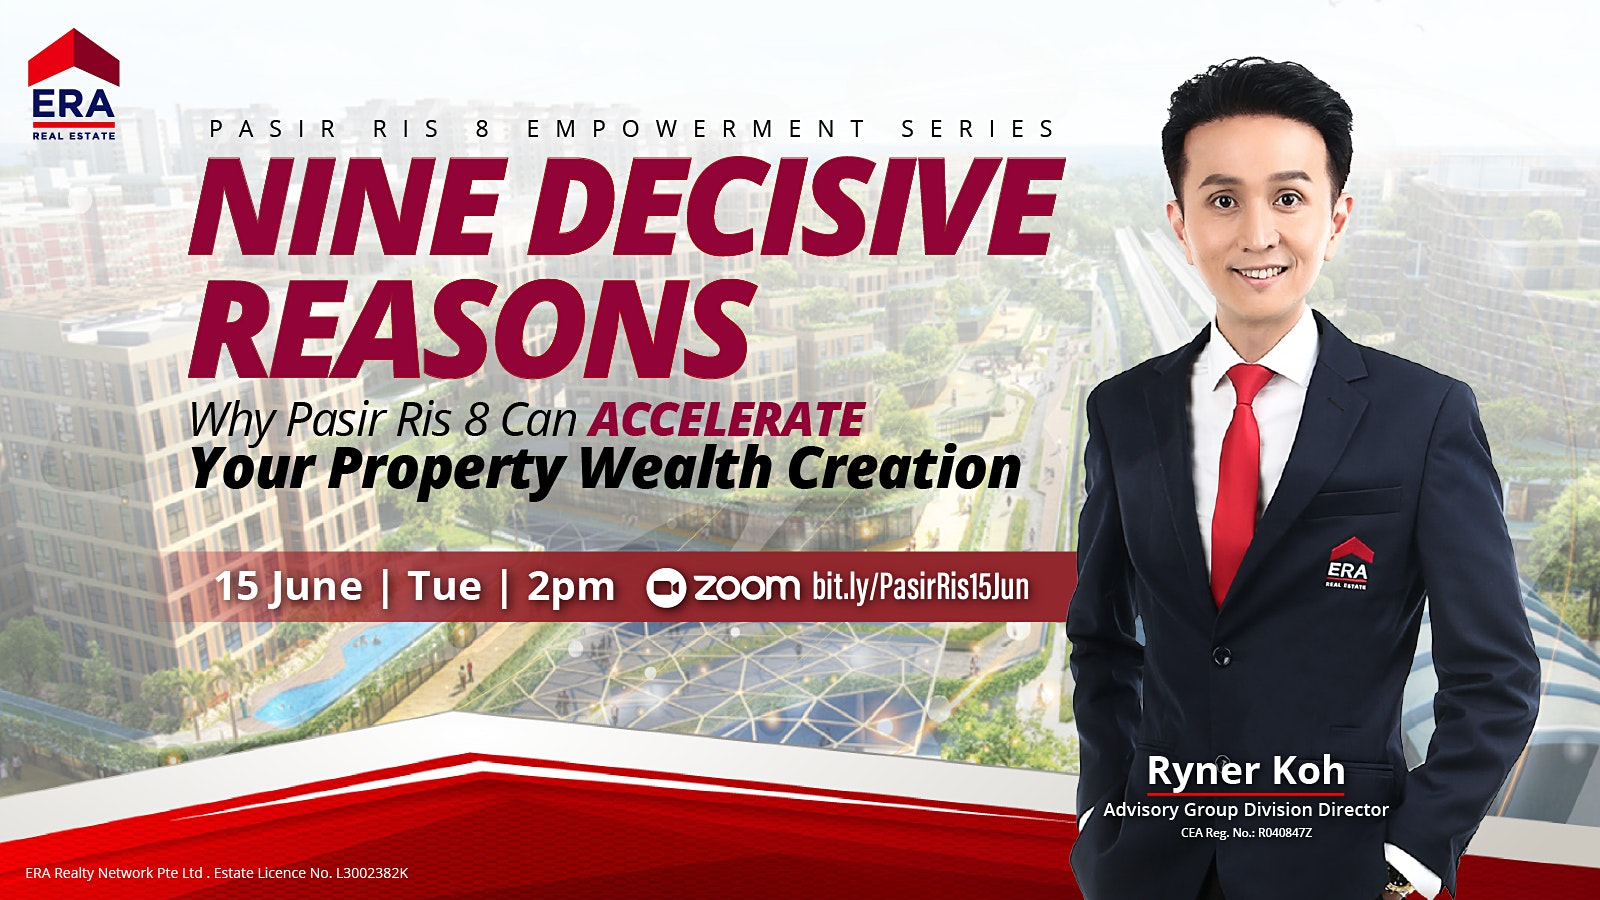 NINE Decisive Reasons Why Pasir Ris 8 Can Accelerate Your Property Wealth